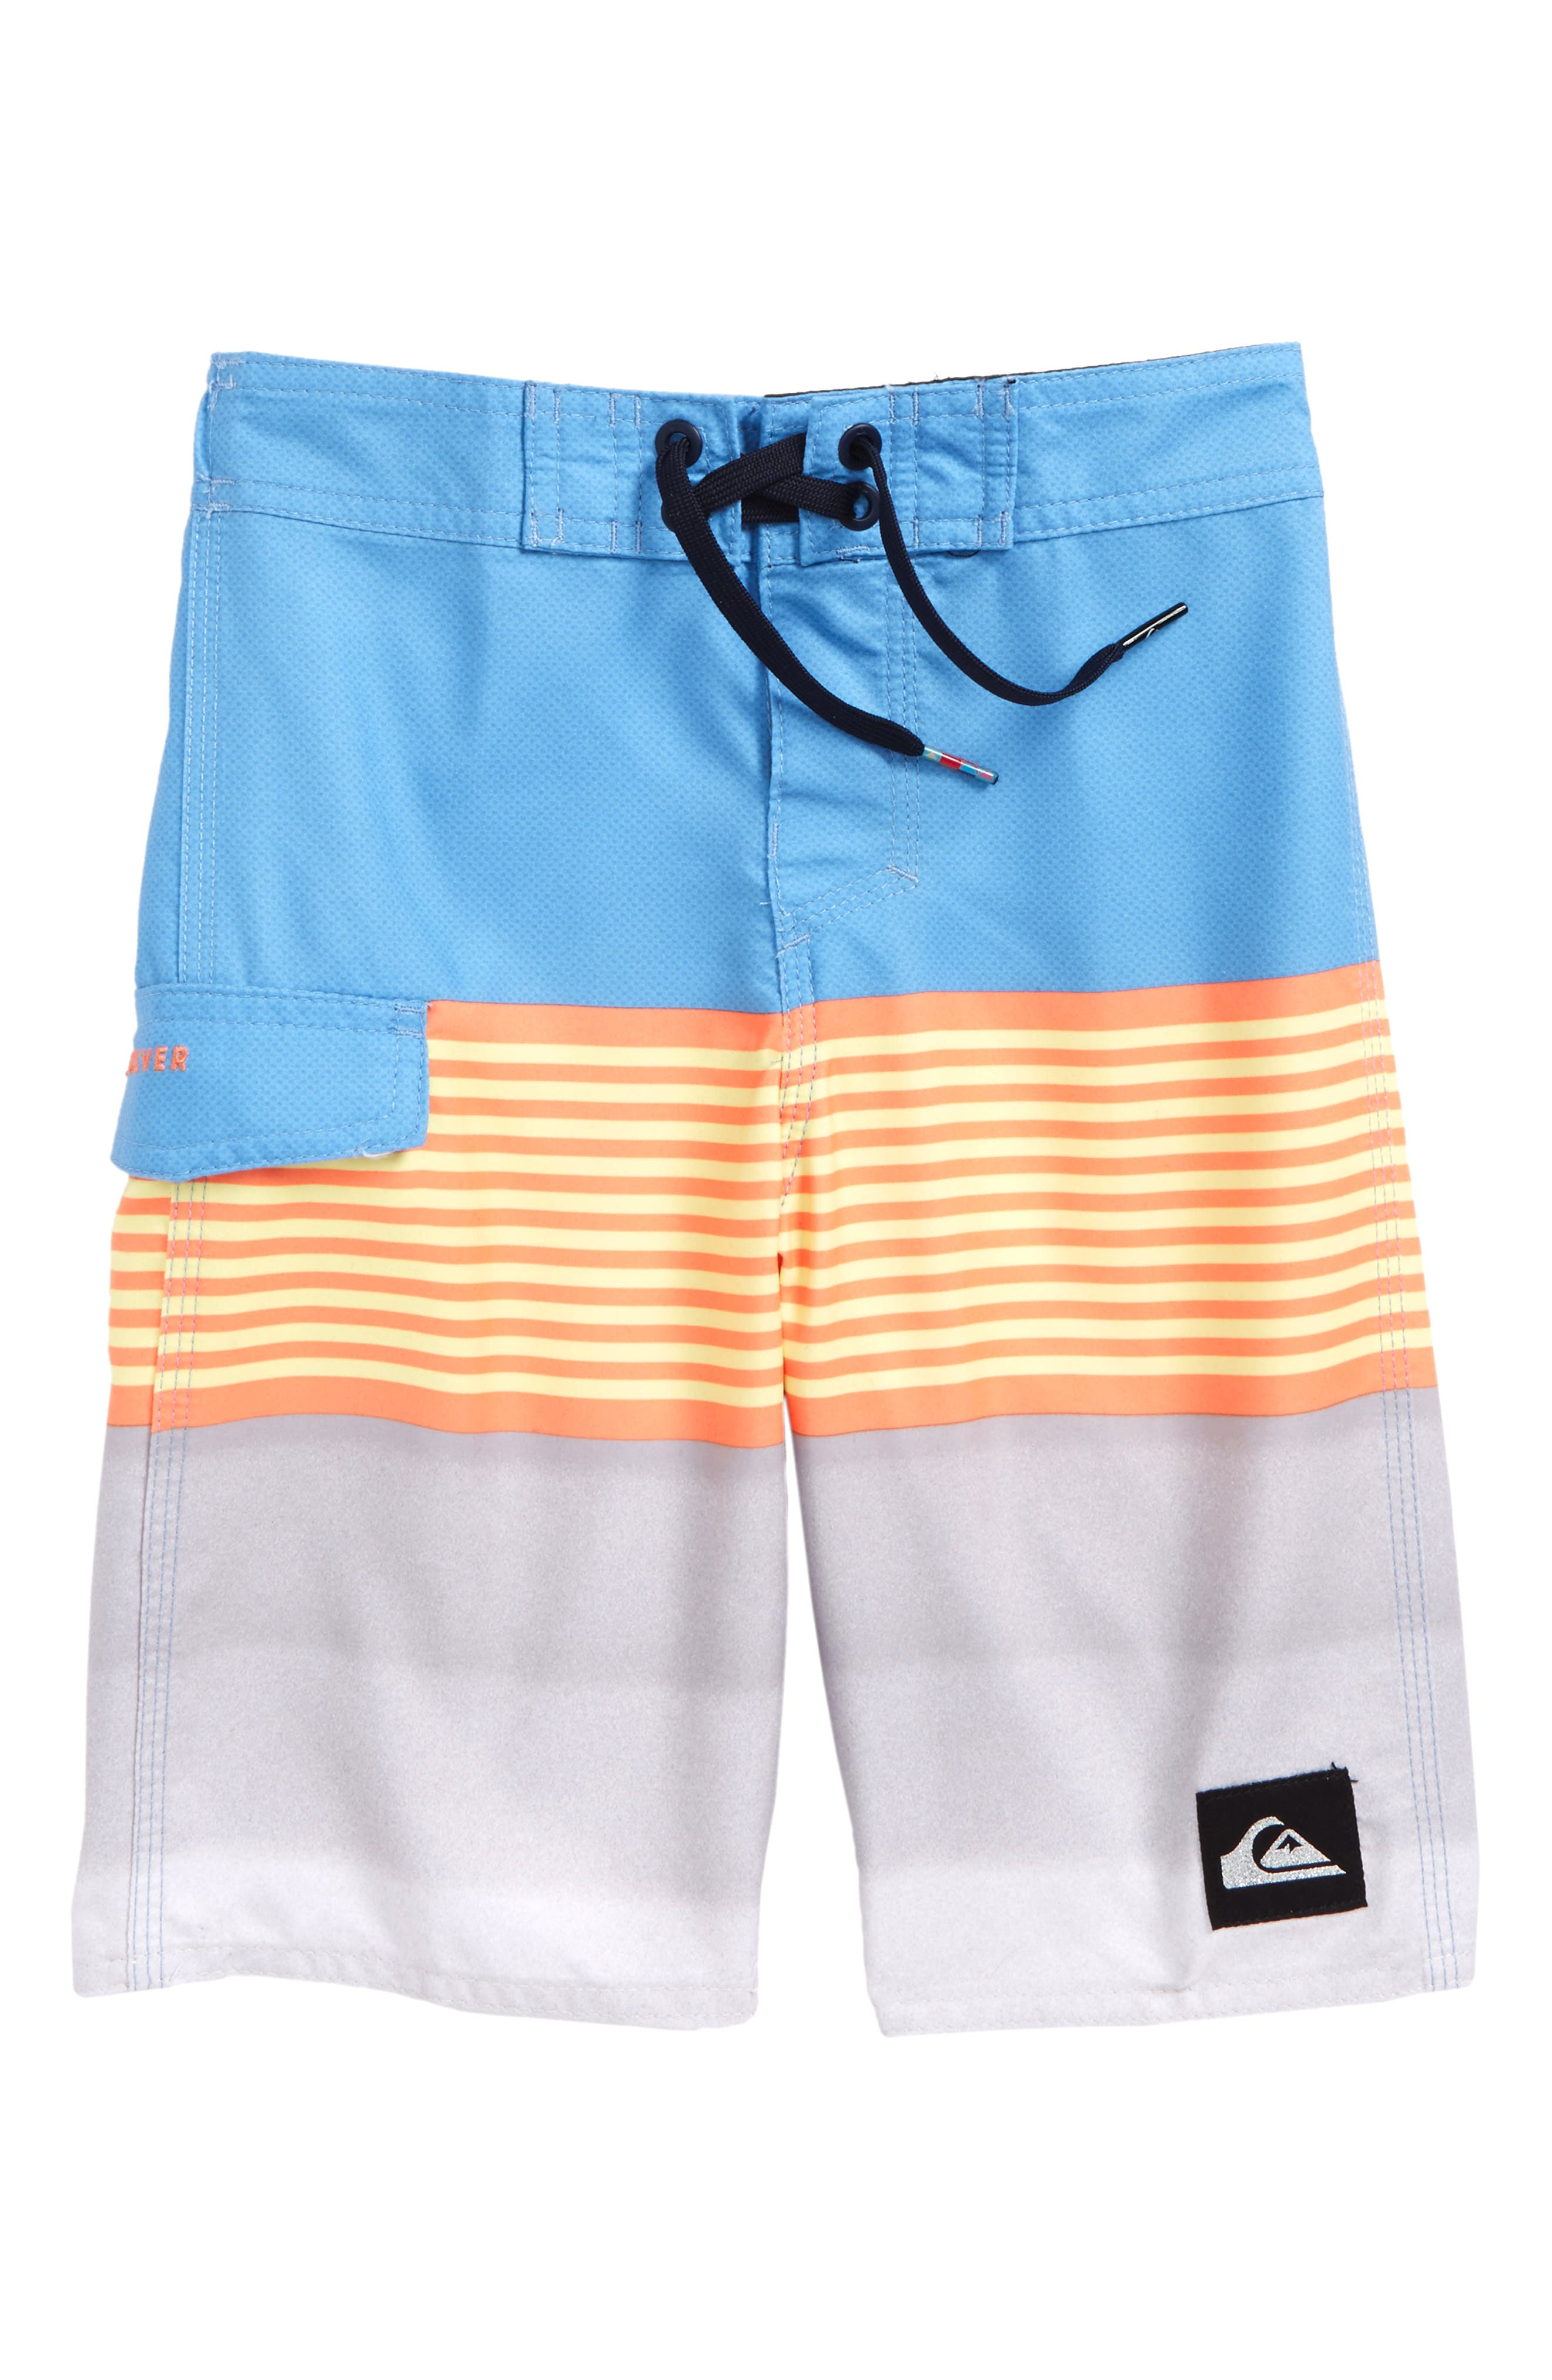 Alternate Image 1 Selected - Quiksilver Division Board Shorts (Toddler Boys & Little Boys)